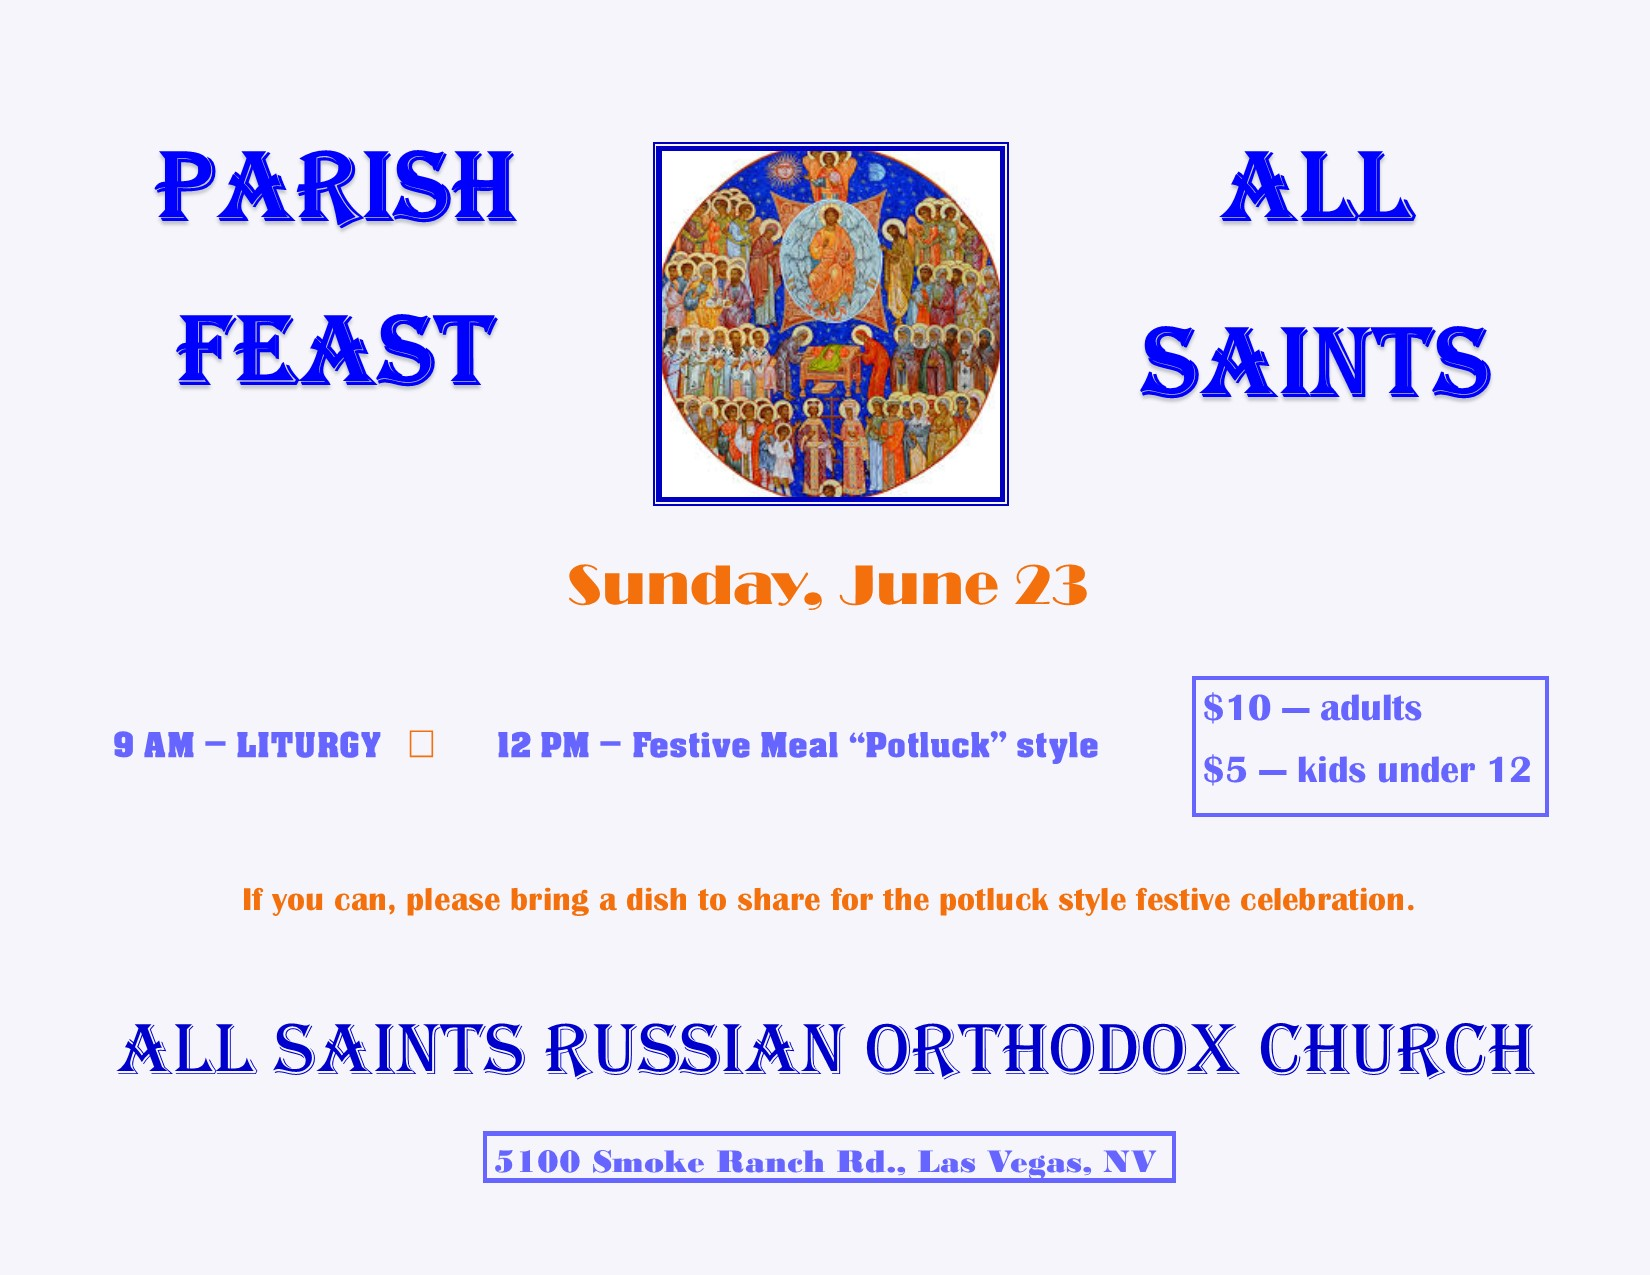 """June 23 is Parish feast day. Festive meal """"potluck"""" style offered at 12PM after Divine Liturgy, which starts at 9AM. The tickets are $10/adult and $5/child under 12. If you can, please bring a dish to share for the potluck style festive celebration."""